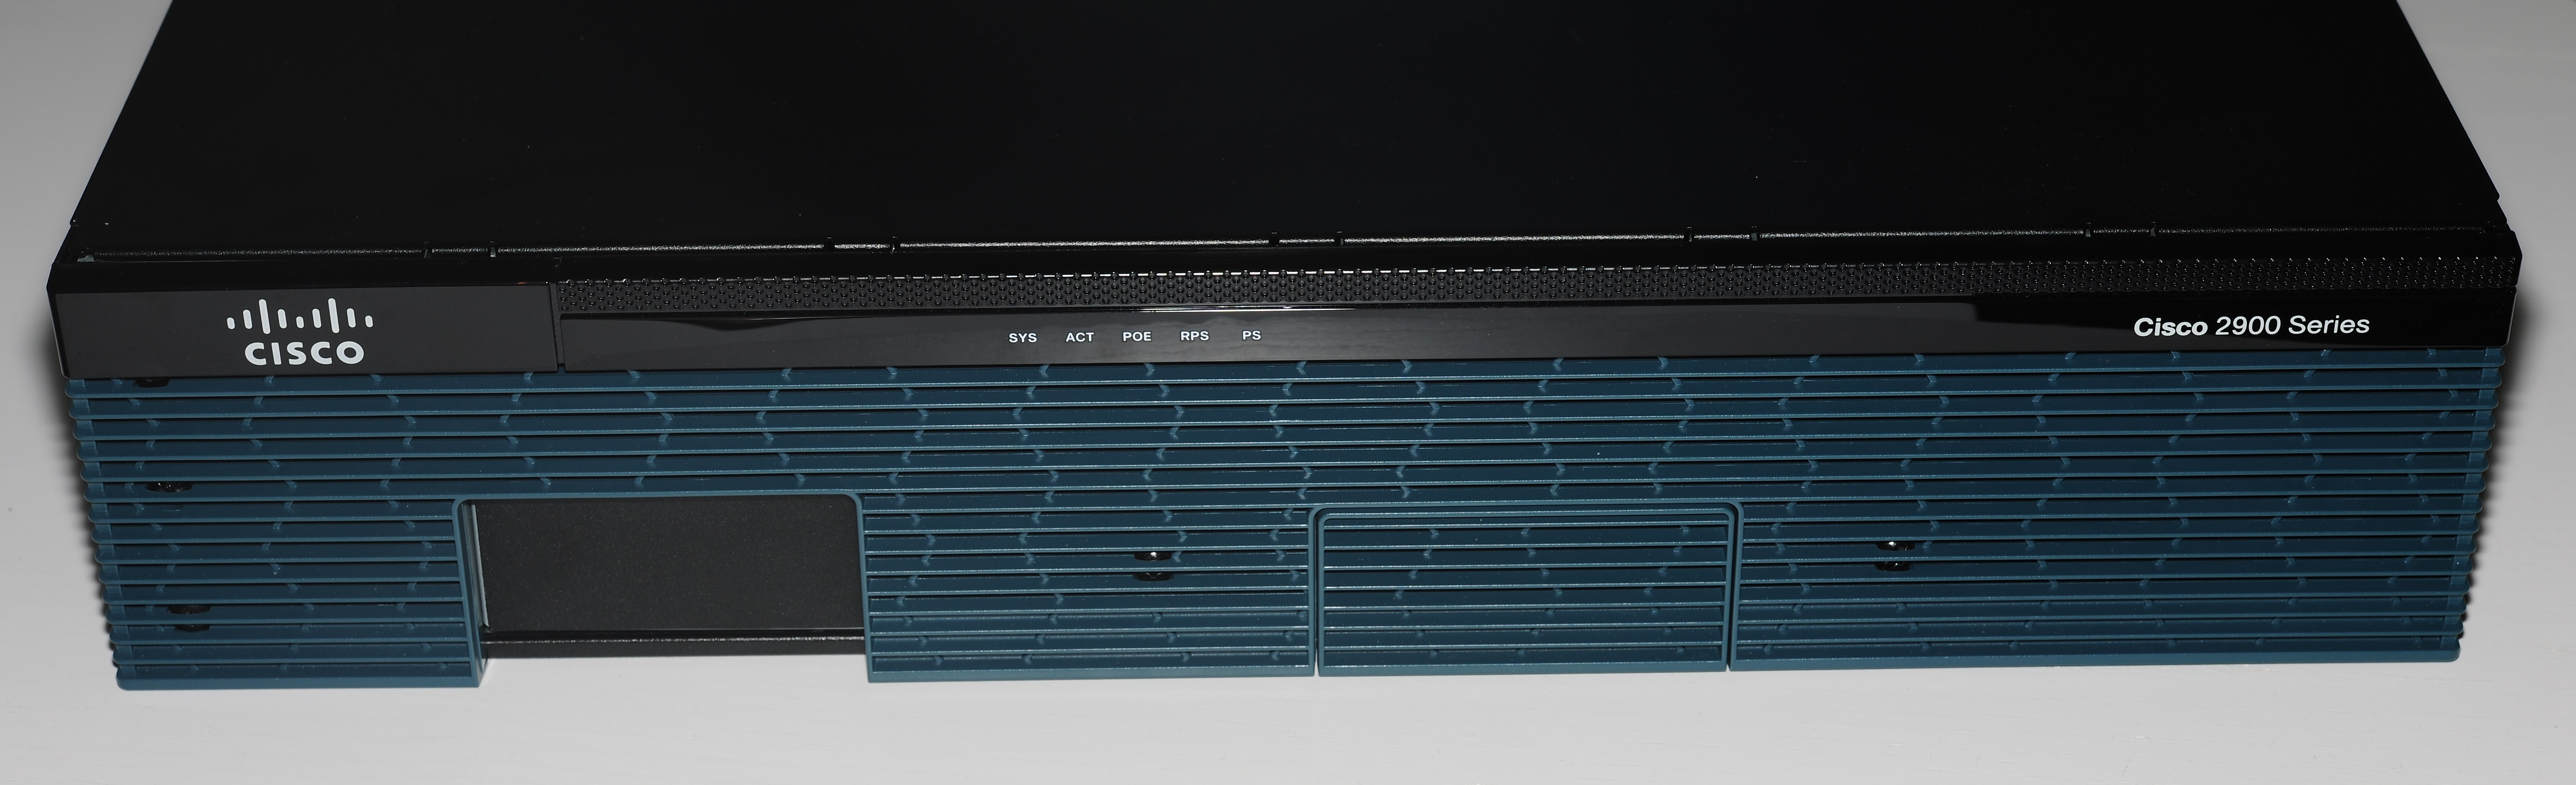 Silencing a Cisco 2911 router for home use | Matt's Tech Pages